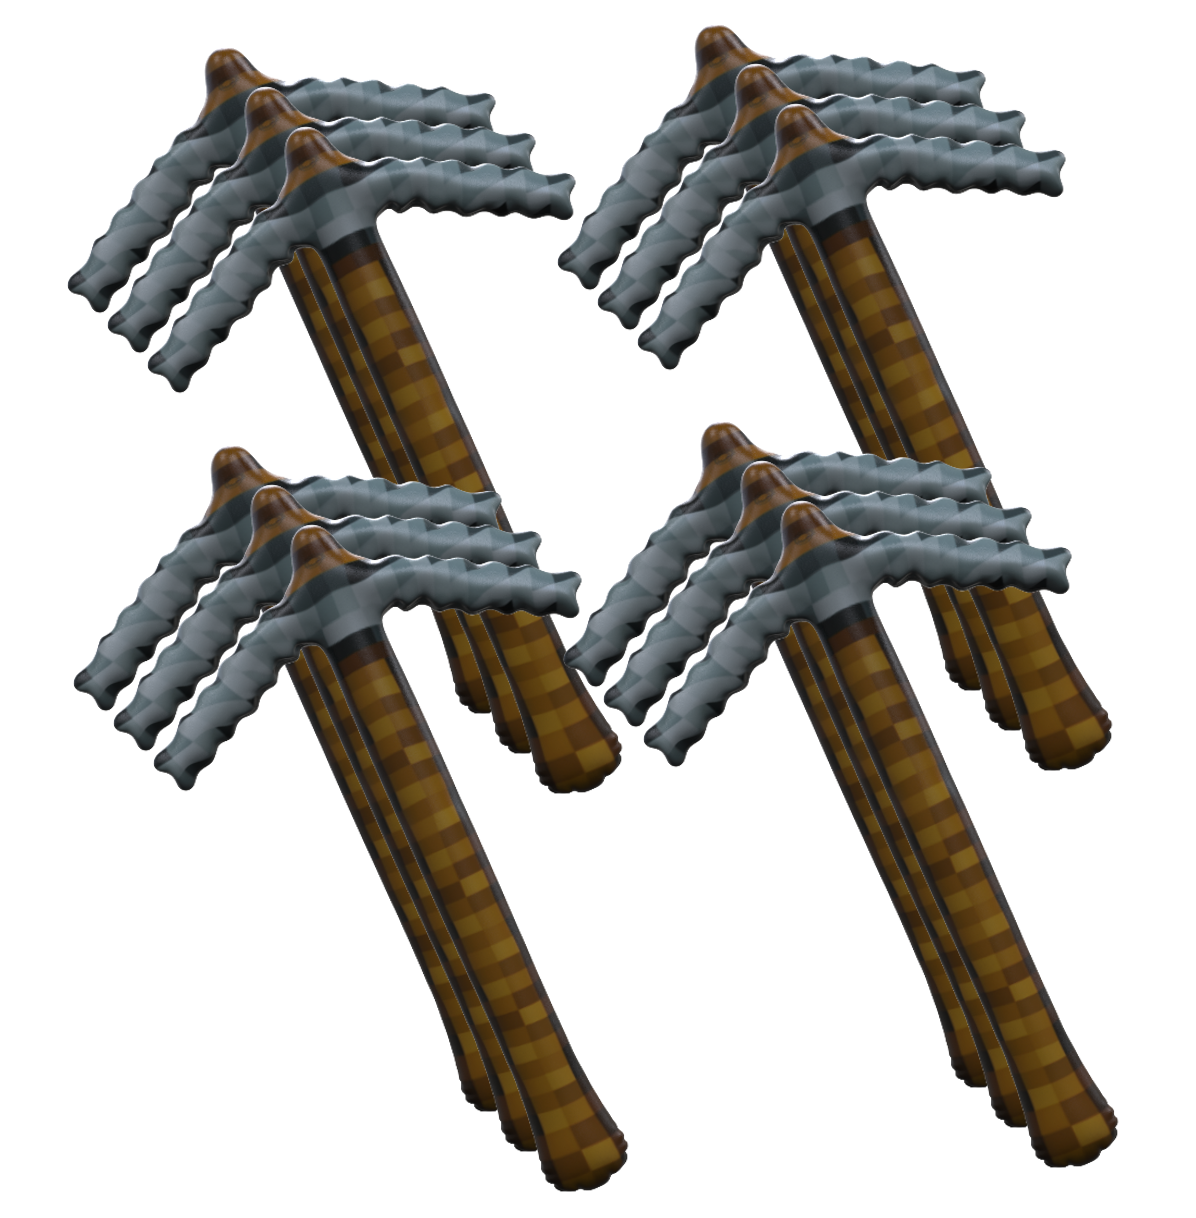 Pixel Mining Pickaxe Inflatable Toy Favor (8) - BirthdayGalore.com